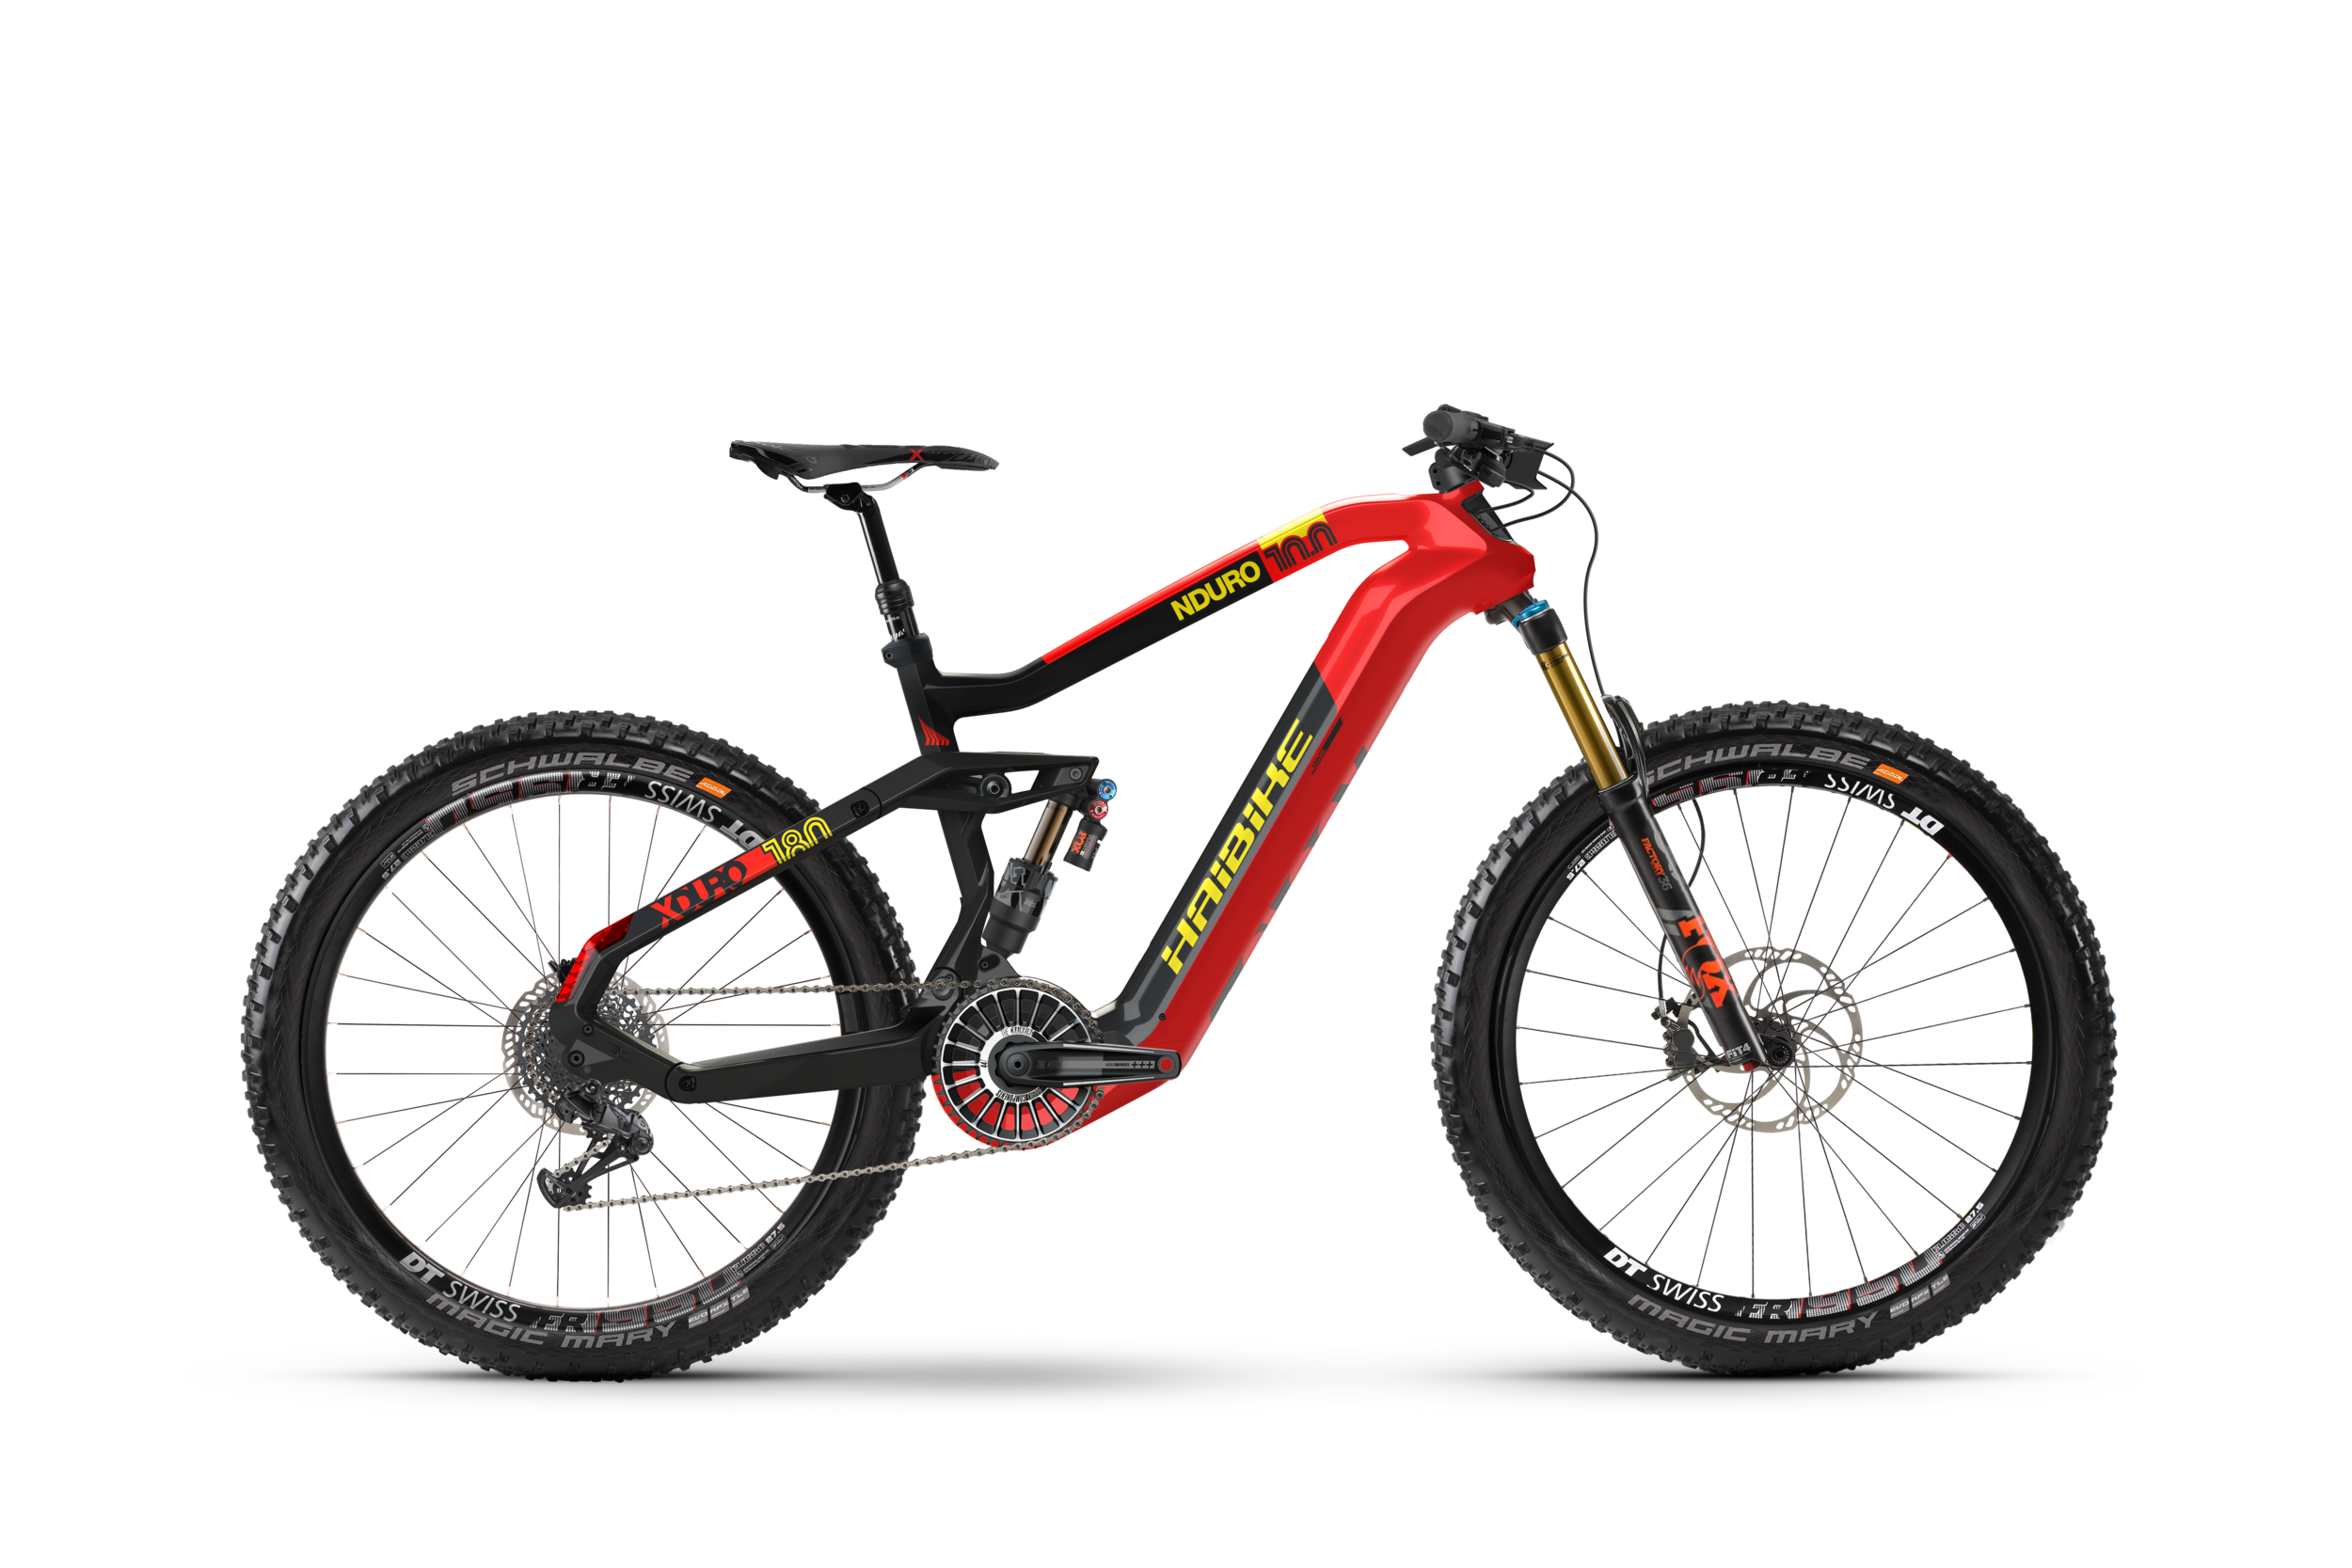 Pictured: The NDURO 10.0 model from Haibike's all-new line of 2019 FLYON bikes.